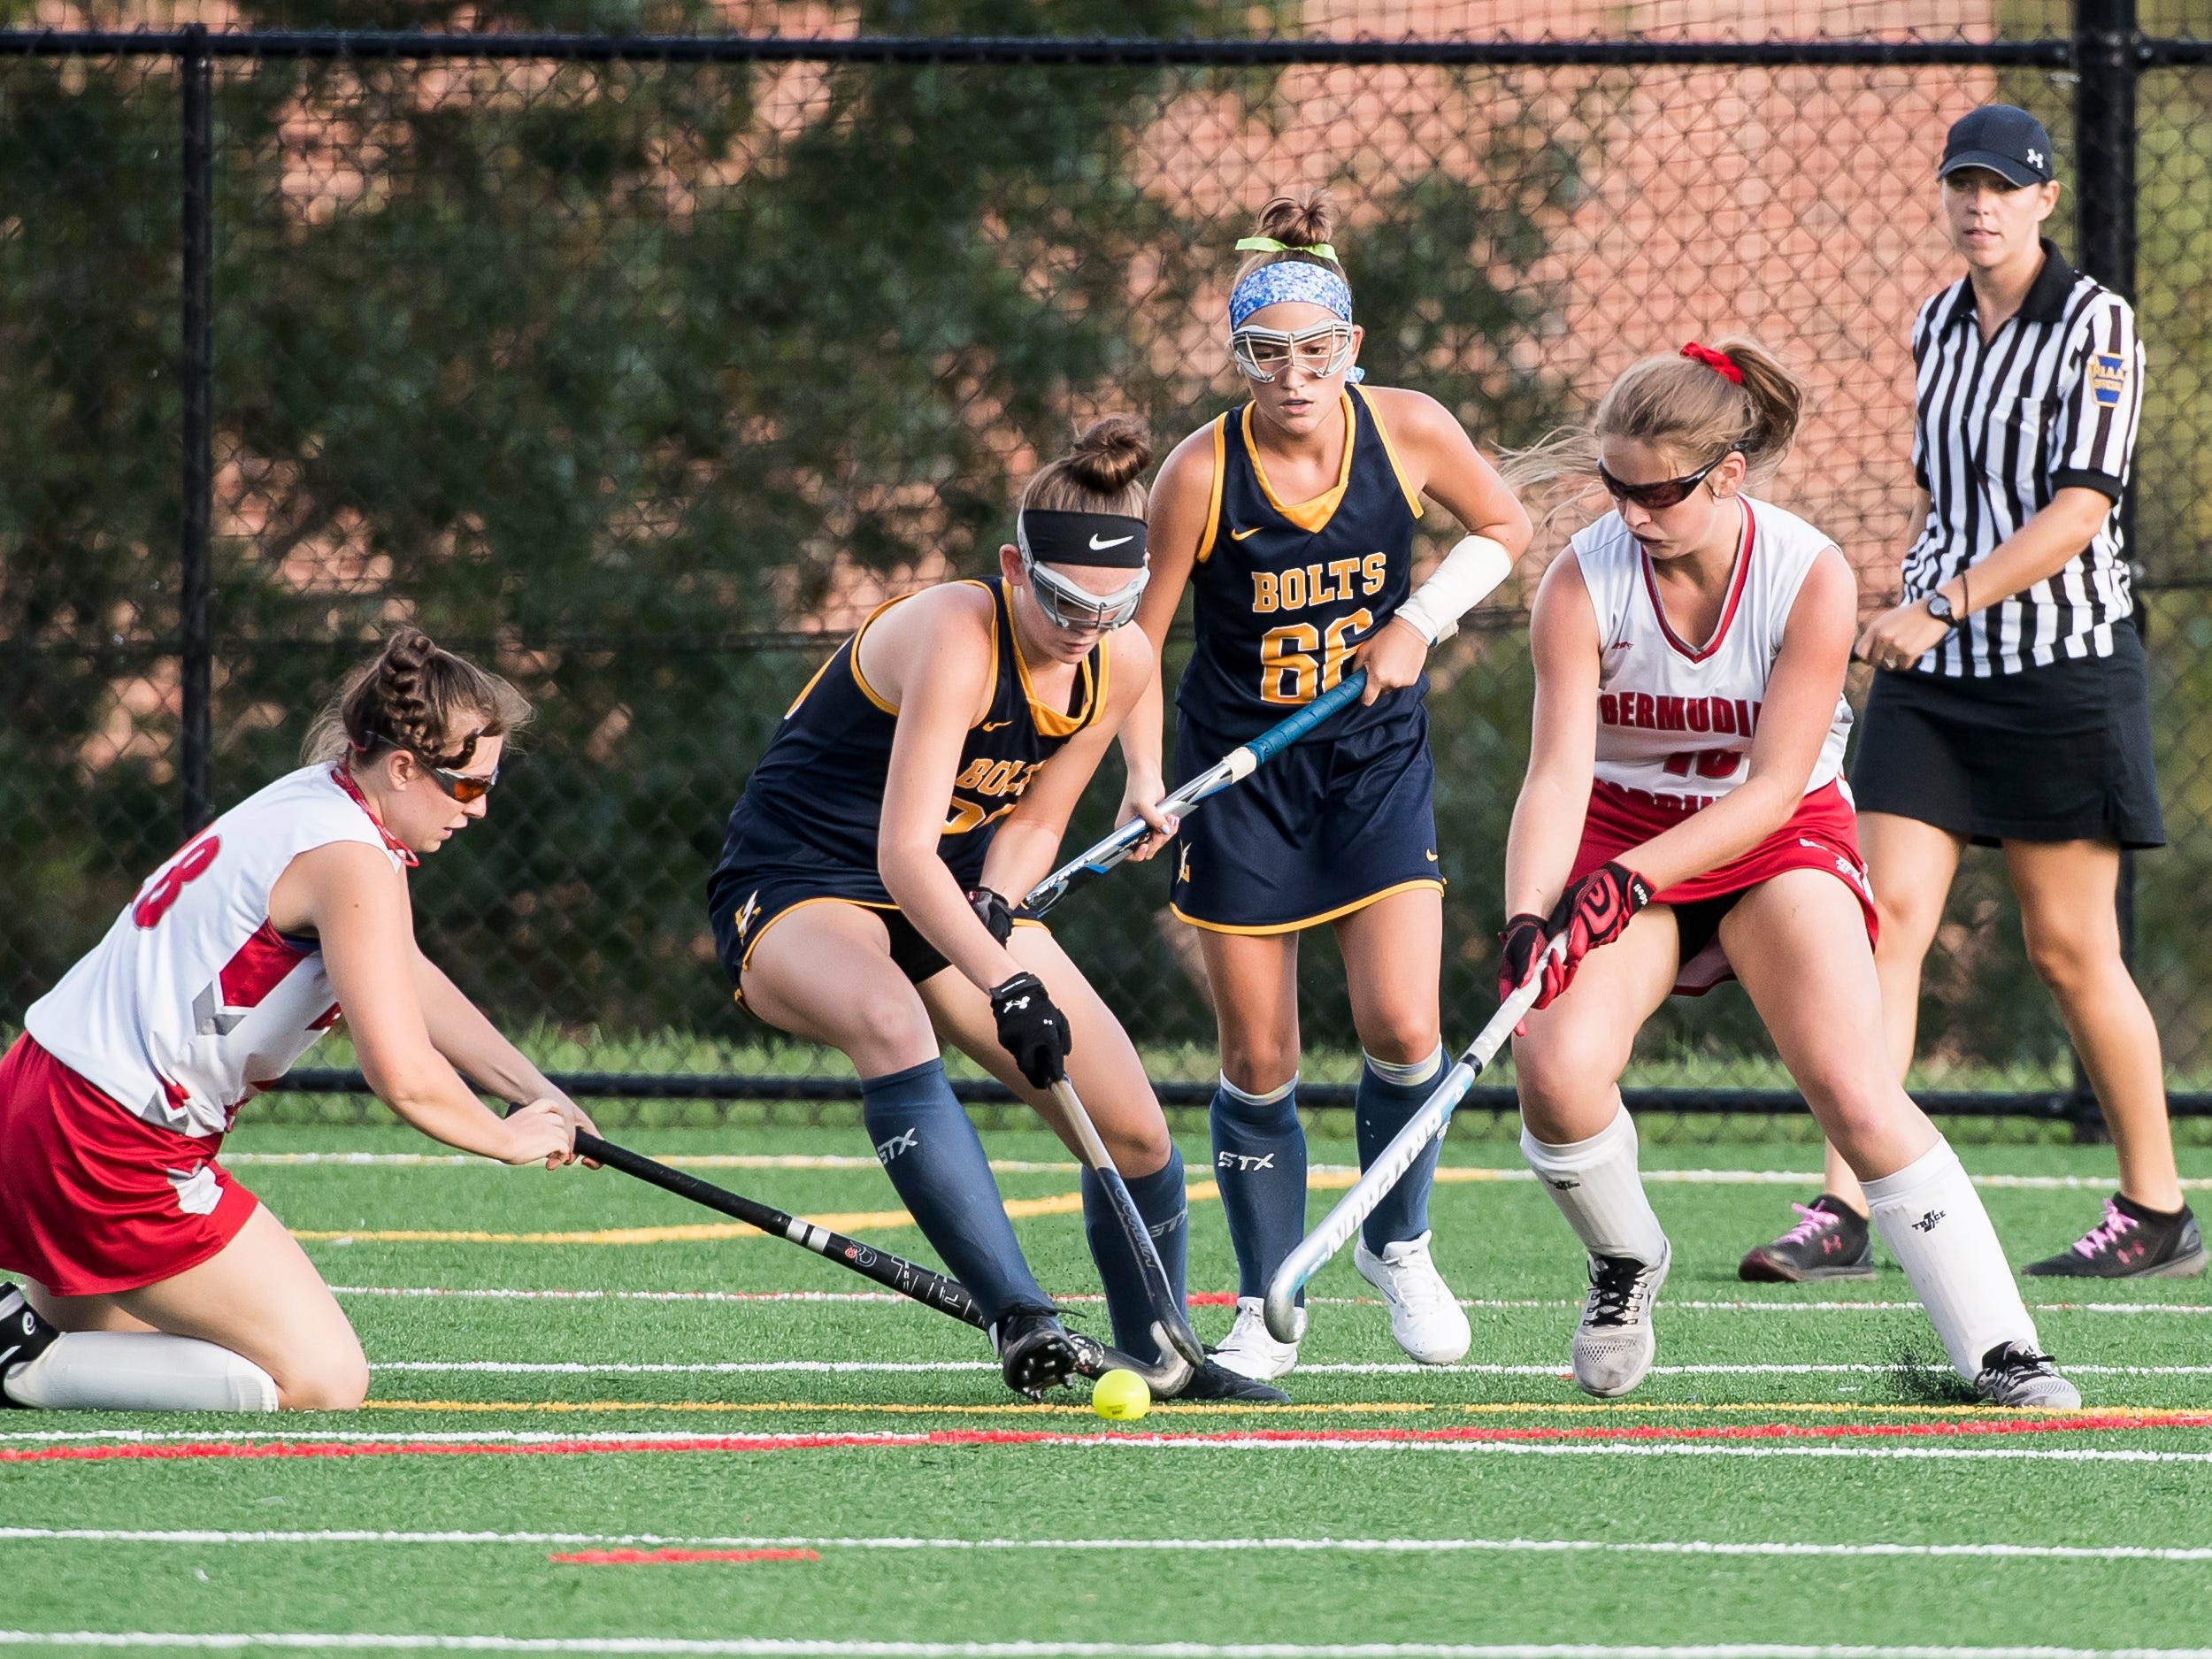 Bermudian Springs and Littlestown field hockey players battle for the ball on Tuesday, October 9, 2018. The Eagles won 4-0.